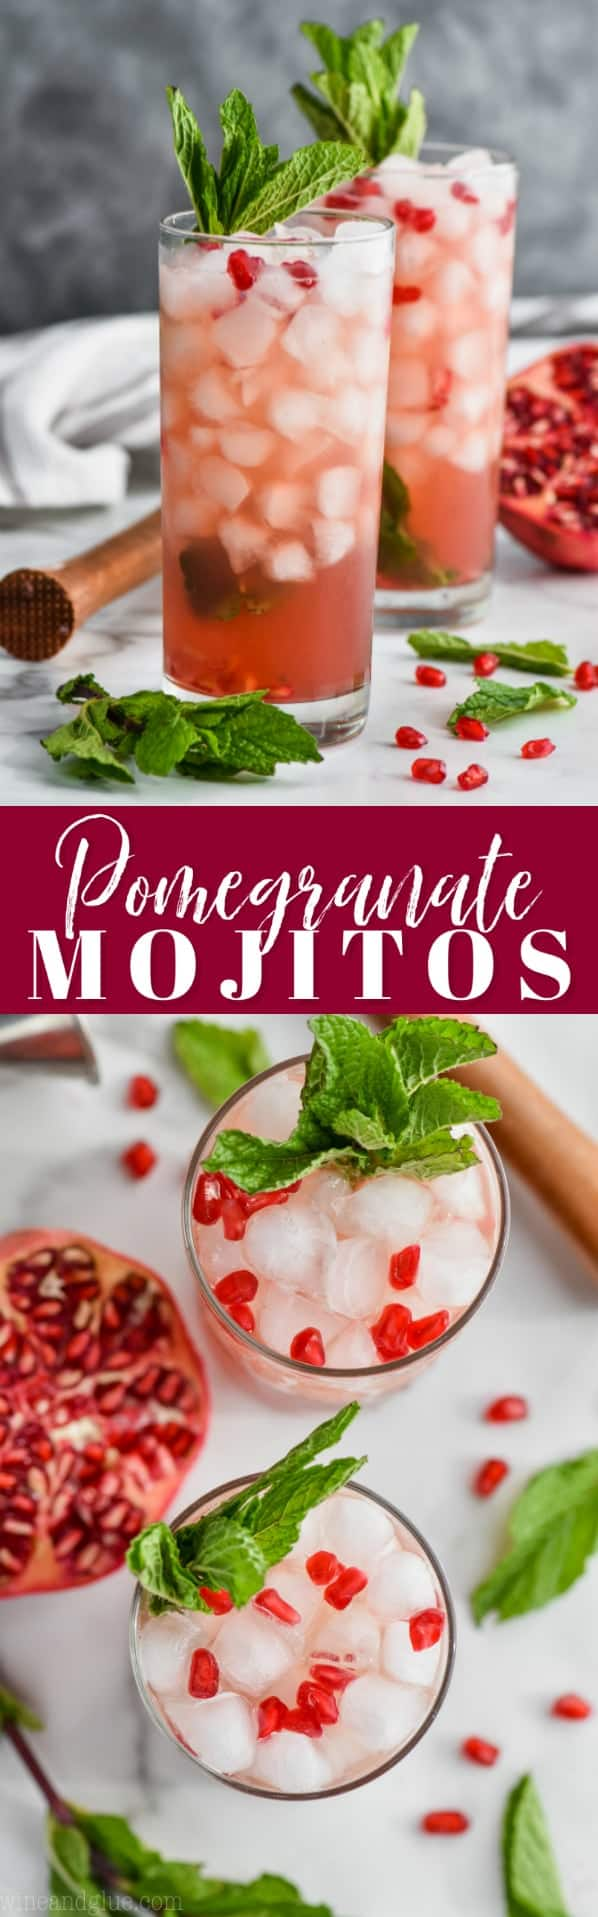 collage of mojito recipe